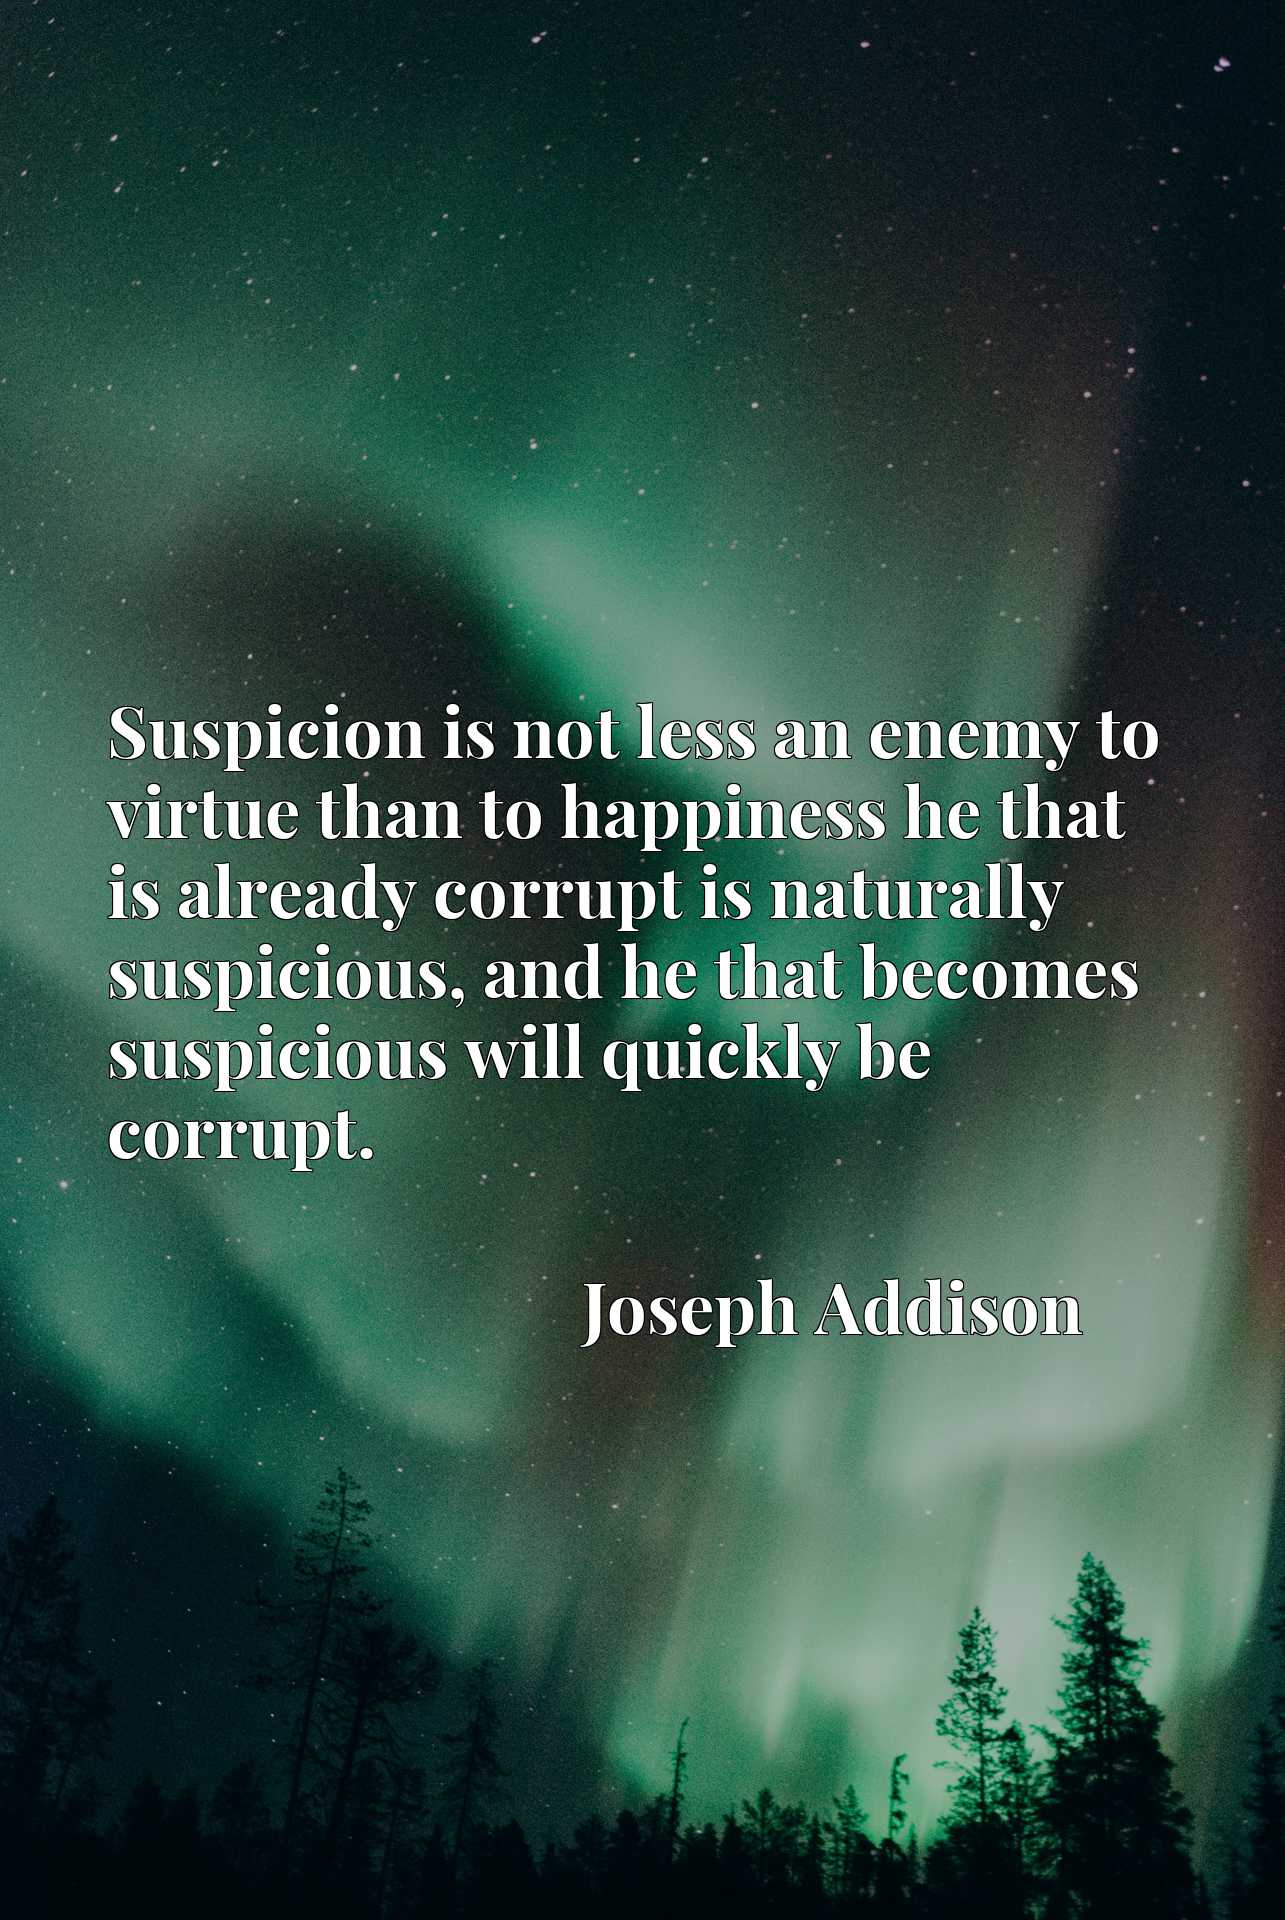 Suspicion is not less an enemy to virtue than to happiness he that is already corrupt is naturally suspicious, and he that becomes suspicious will quickly be corrupt.